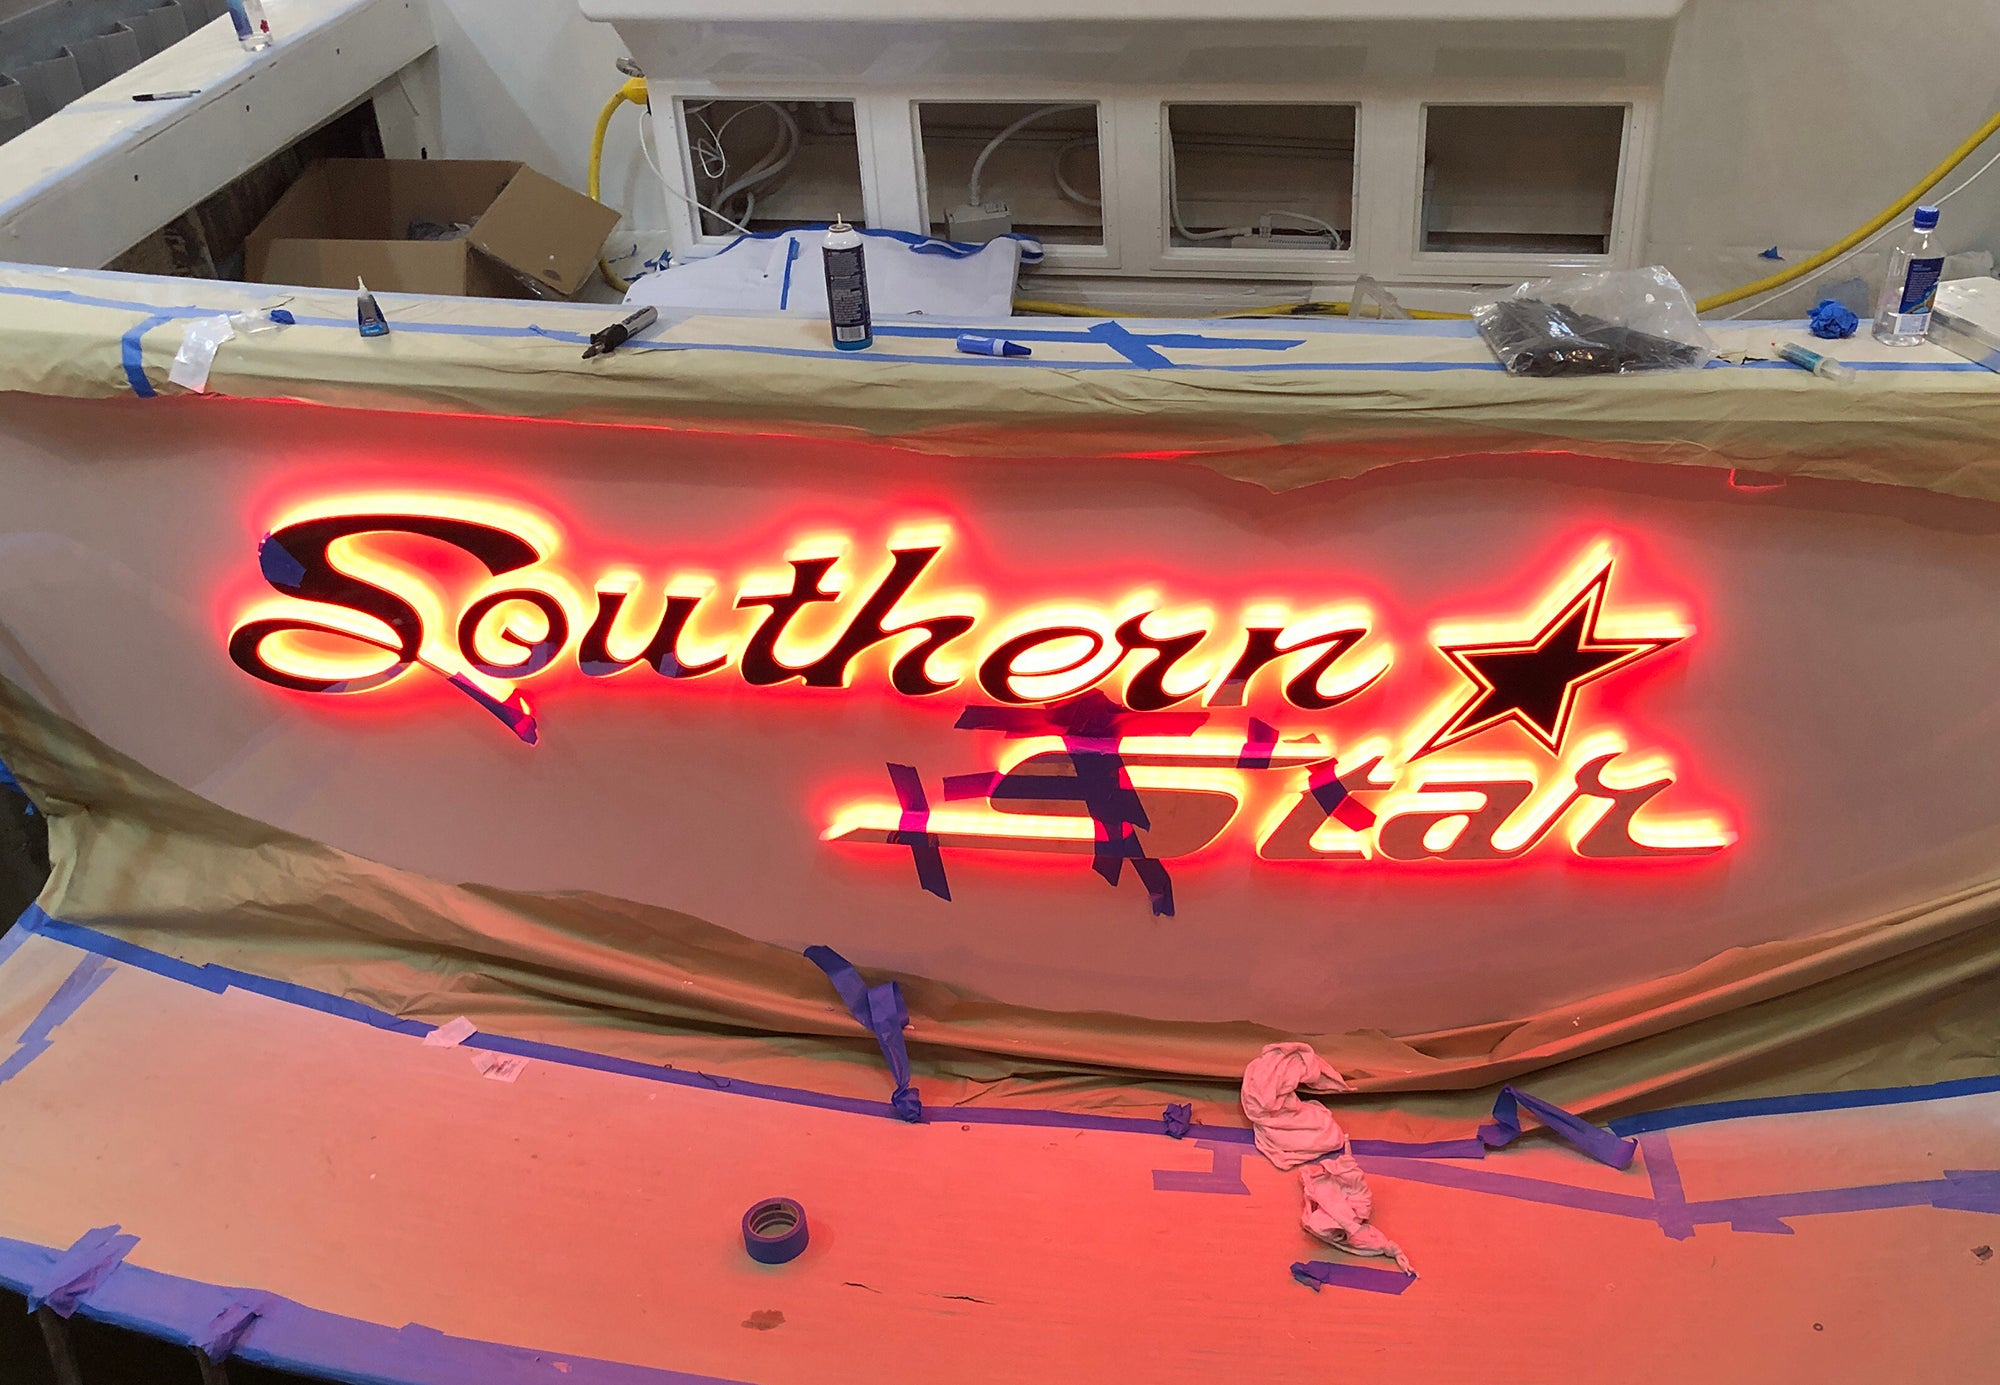 Souther Star Yacht Sign